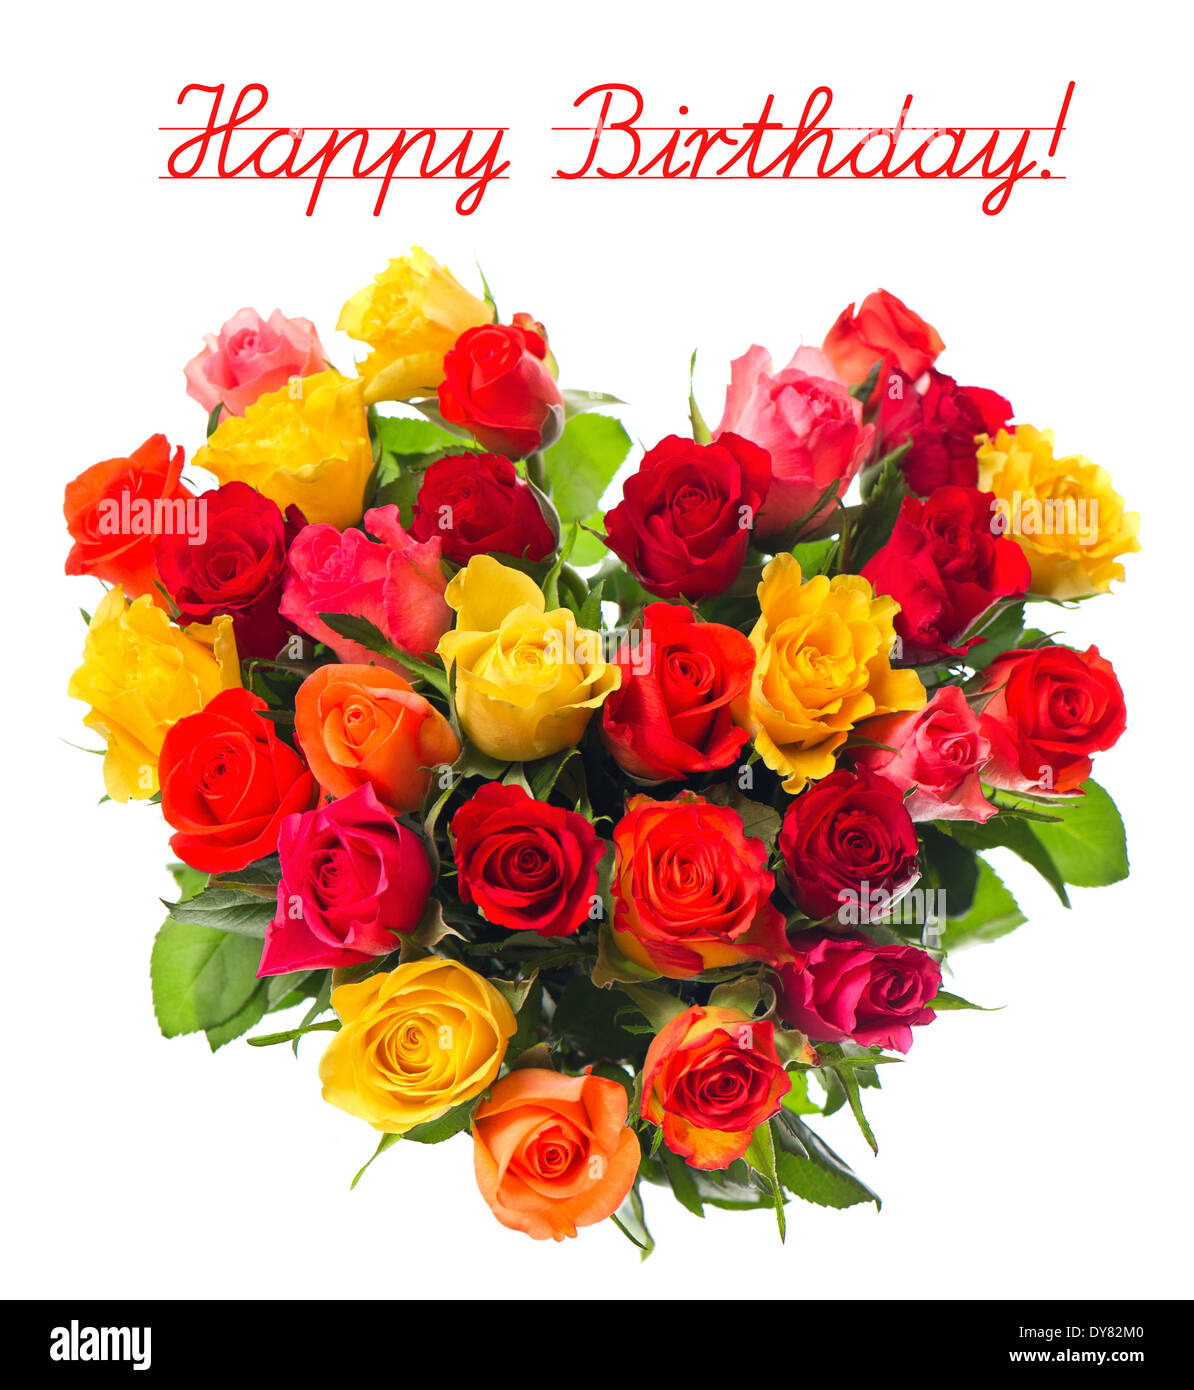 Happy Birthday Card Concept Bouquet Of Colorful Assorted Roses In